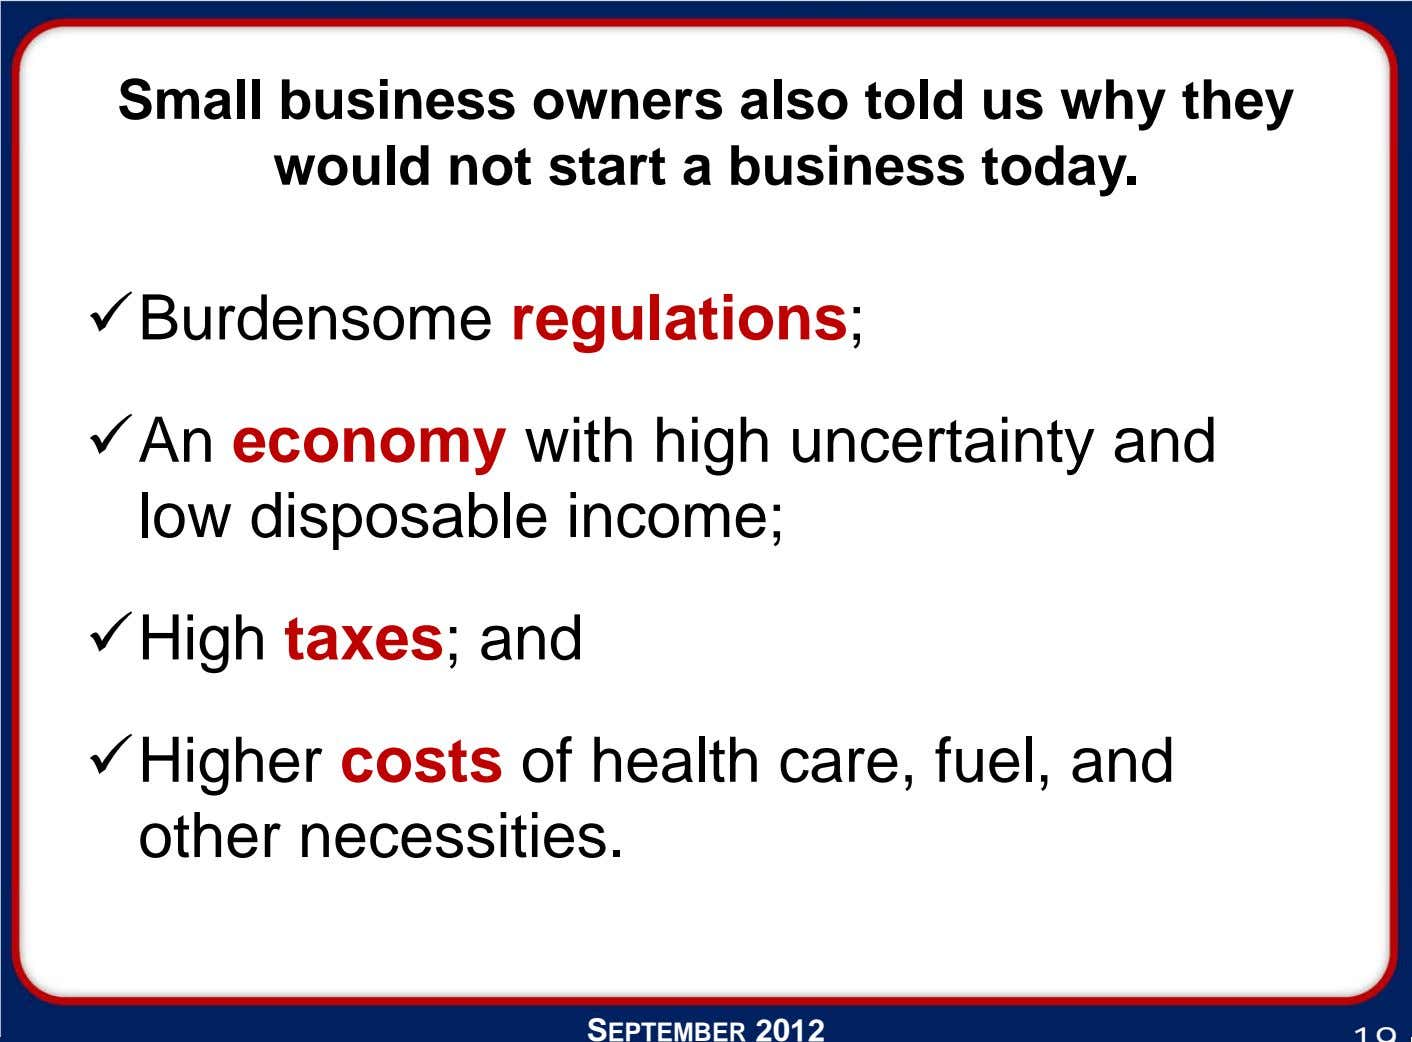 Small business owners also told us why they would not start a business today. Burdensome